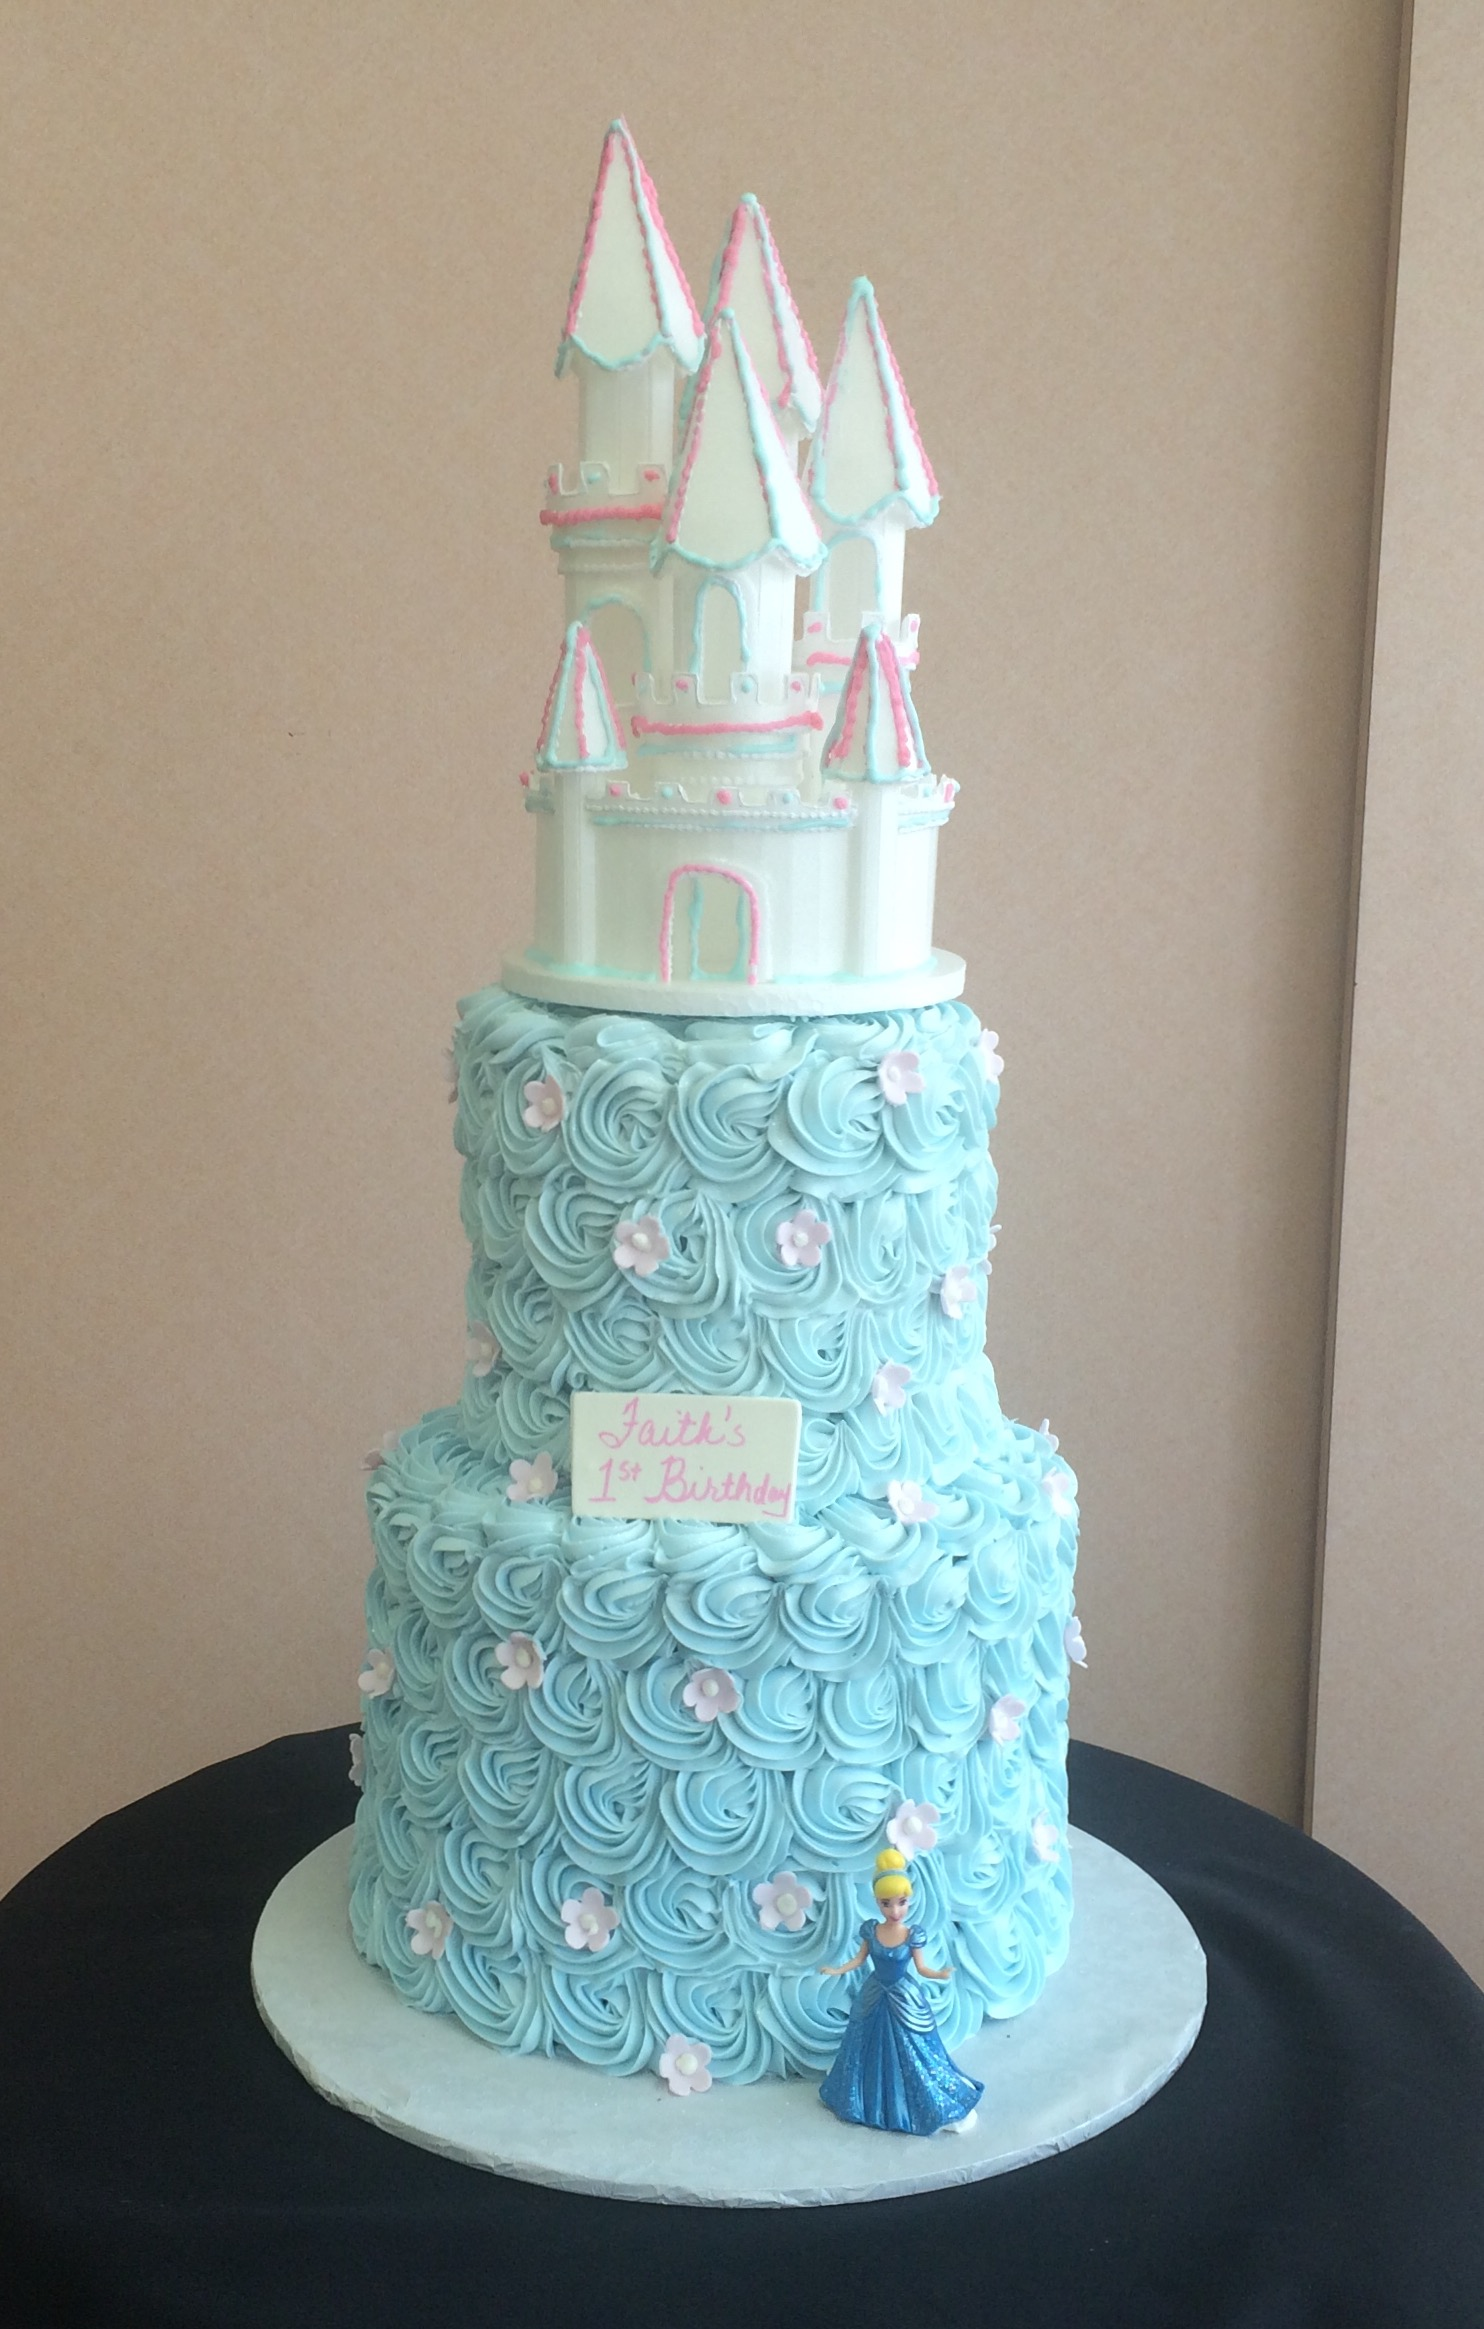 4 Tier Blue Rosettes with Castle.jpg